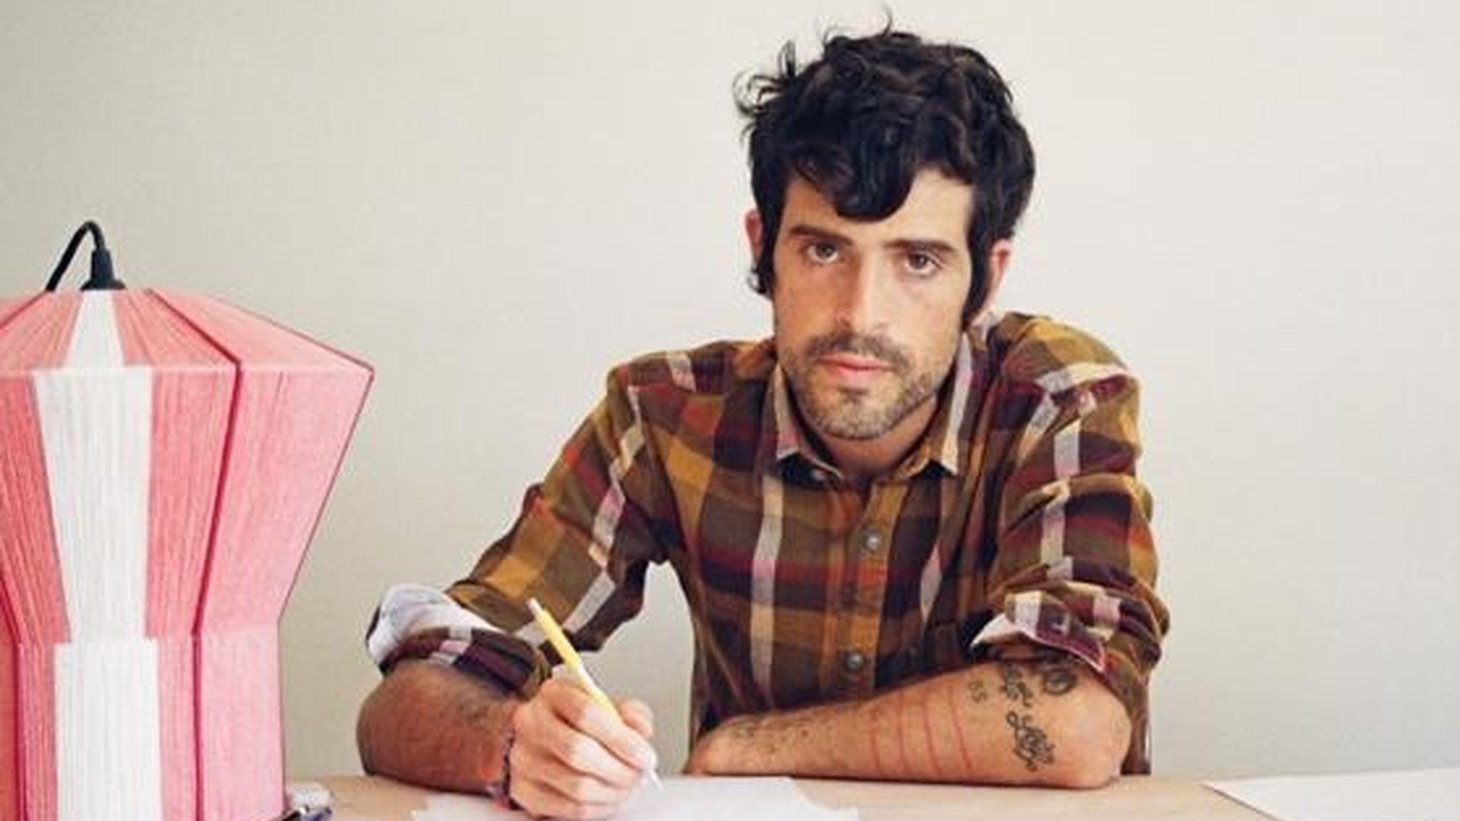 """Devendra Banhart's new album plays like a sweet lullaby filled with intricate textures. Today's Top Tune is in Spanish, it's called """"Mi Negrita."""